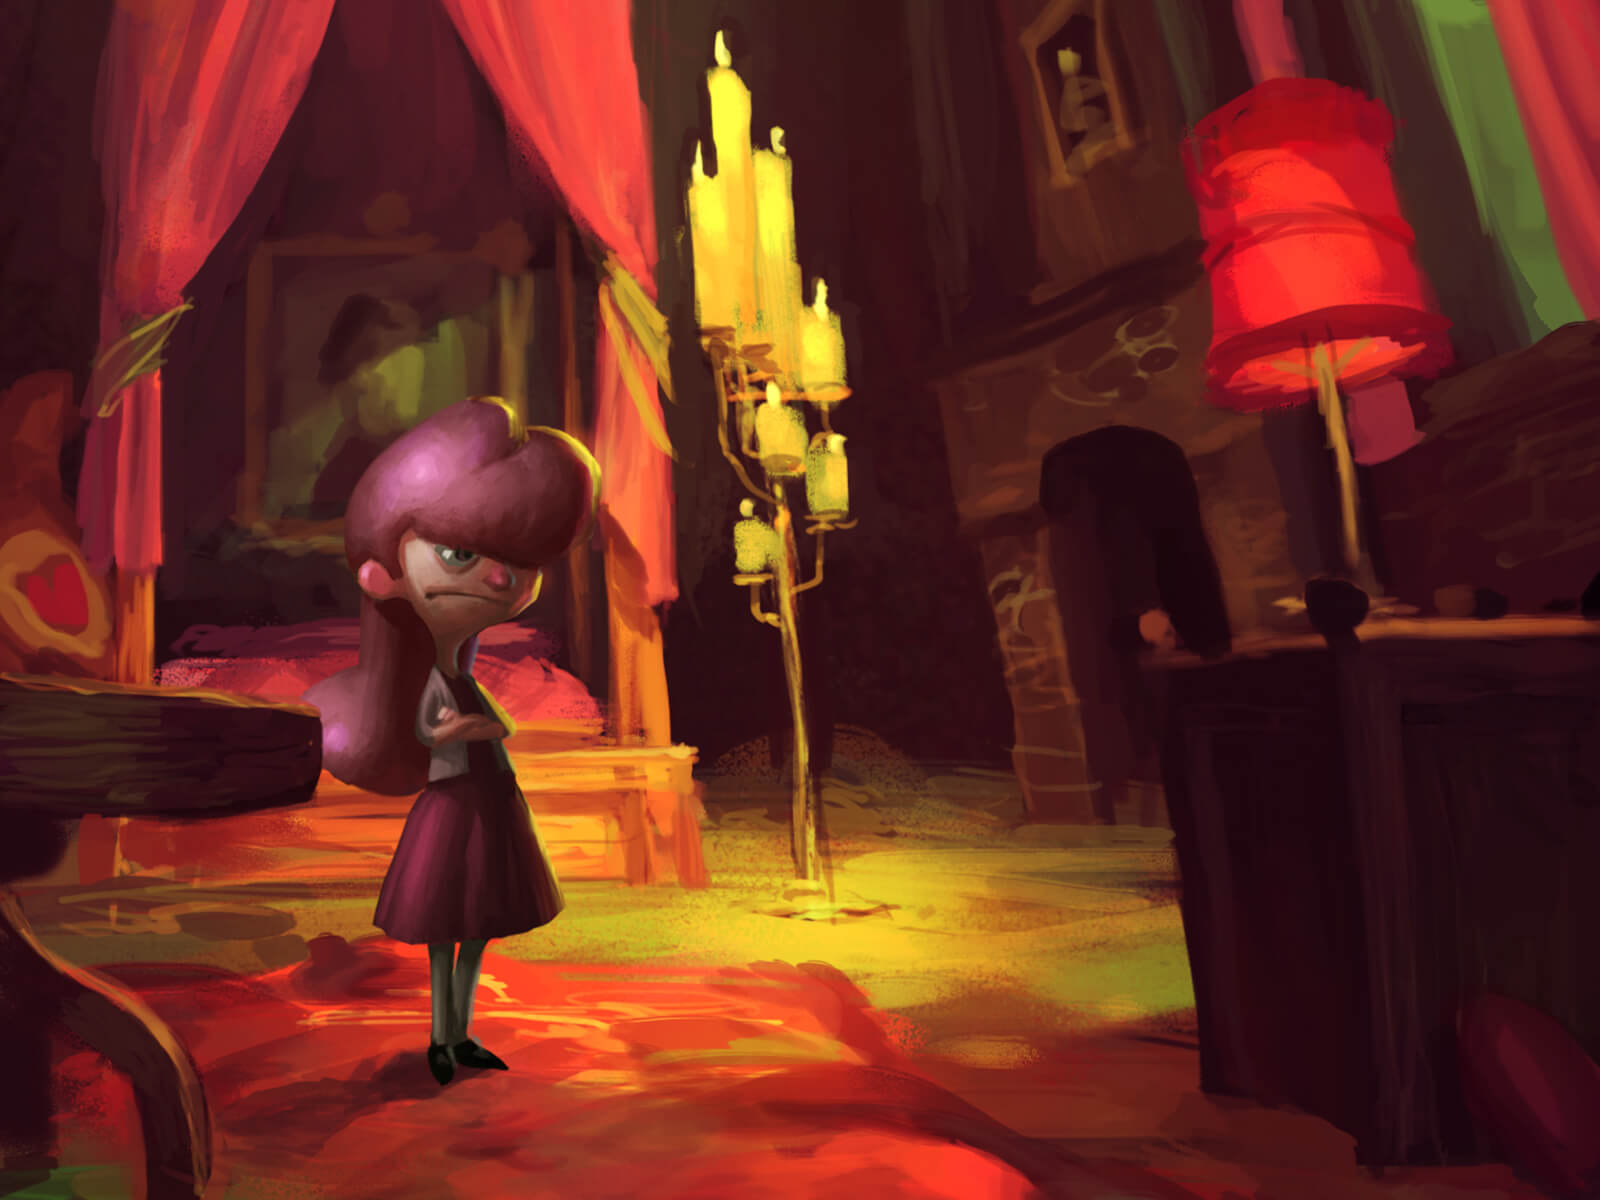 A young girl with an annoyed look stands in a cavernous, candlelit bedroom. Her hair, dress, and furnishings are colored pink